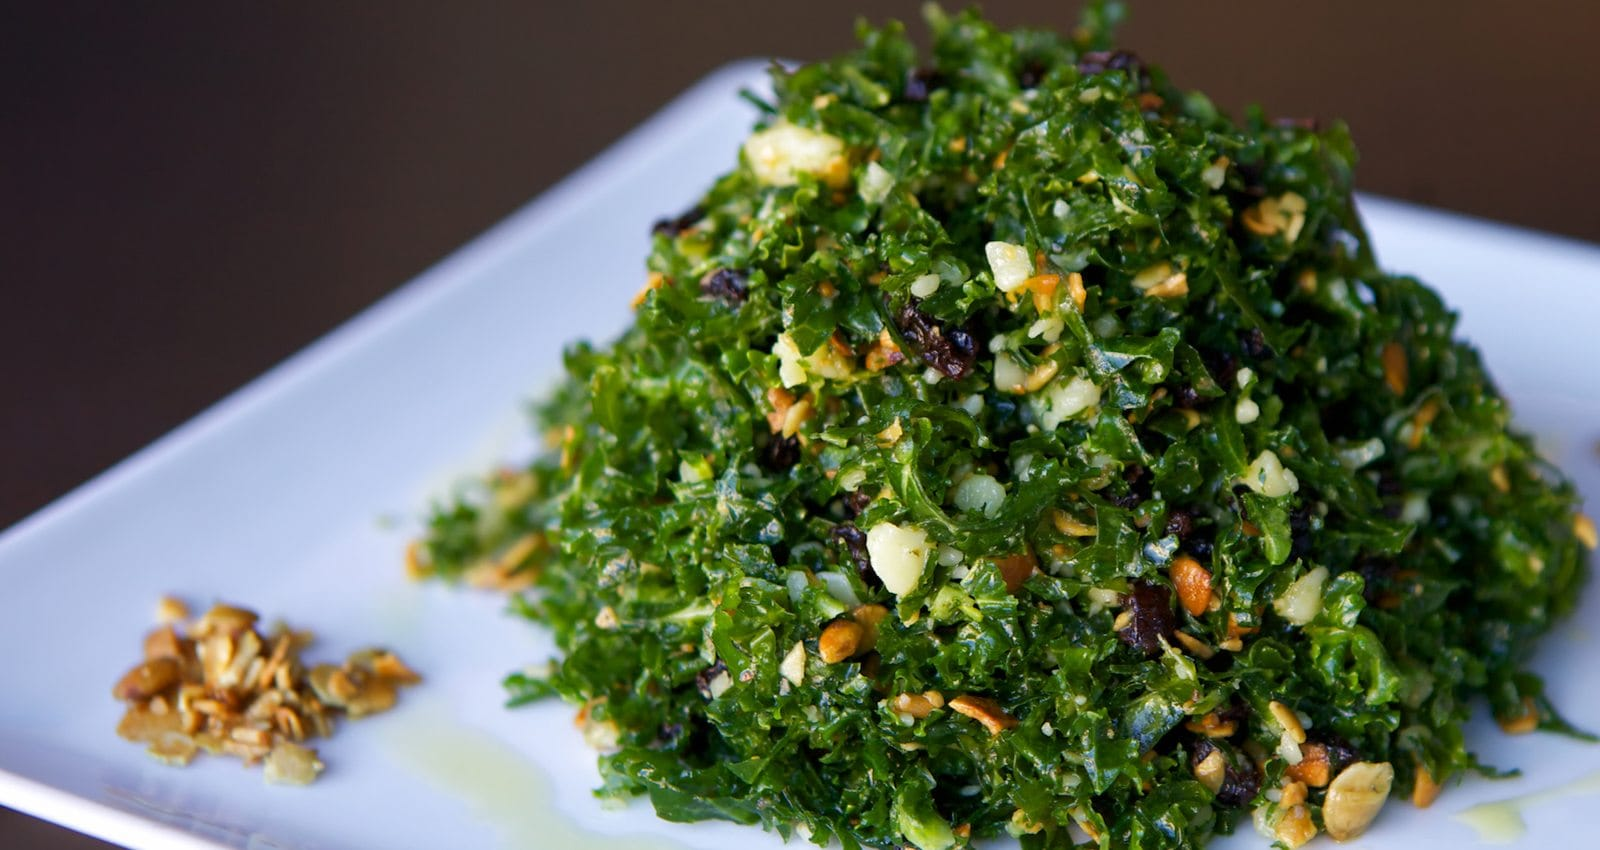 Kale salad from Posana, one of Asheville's best restaurants